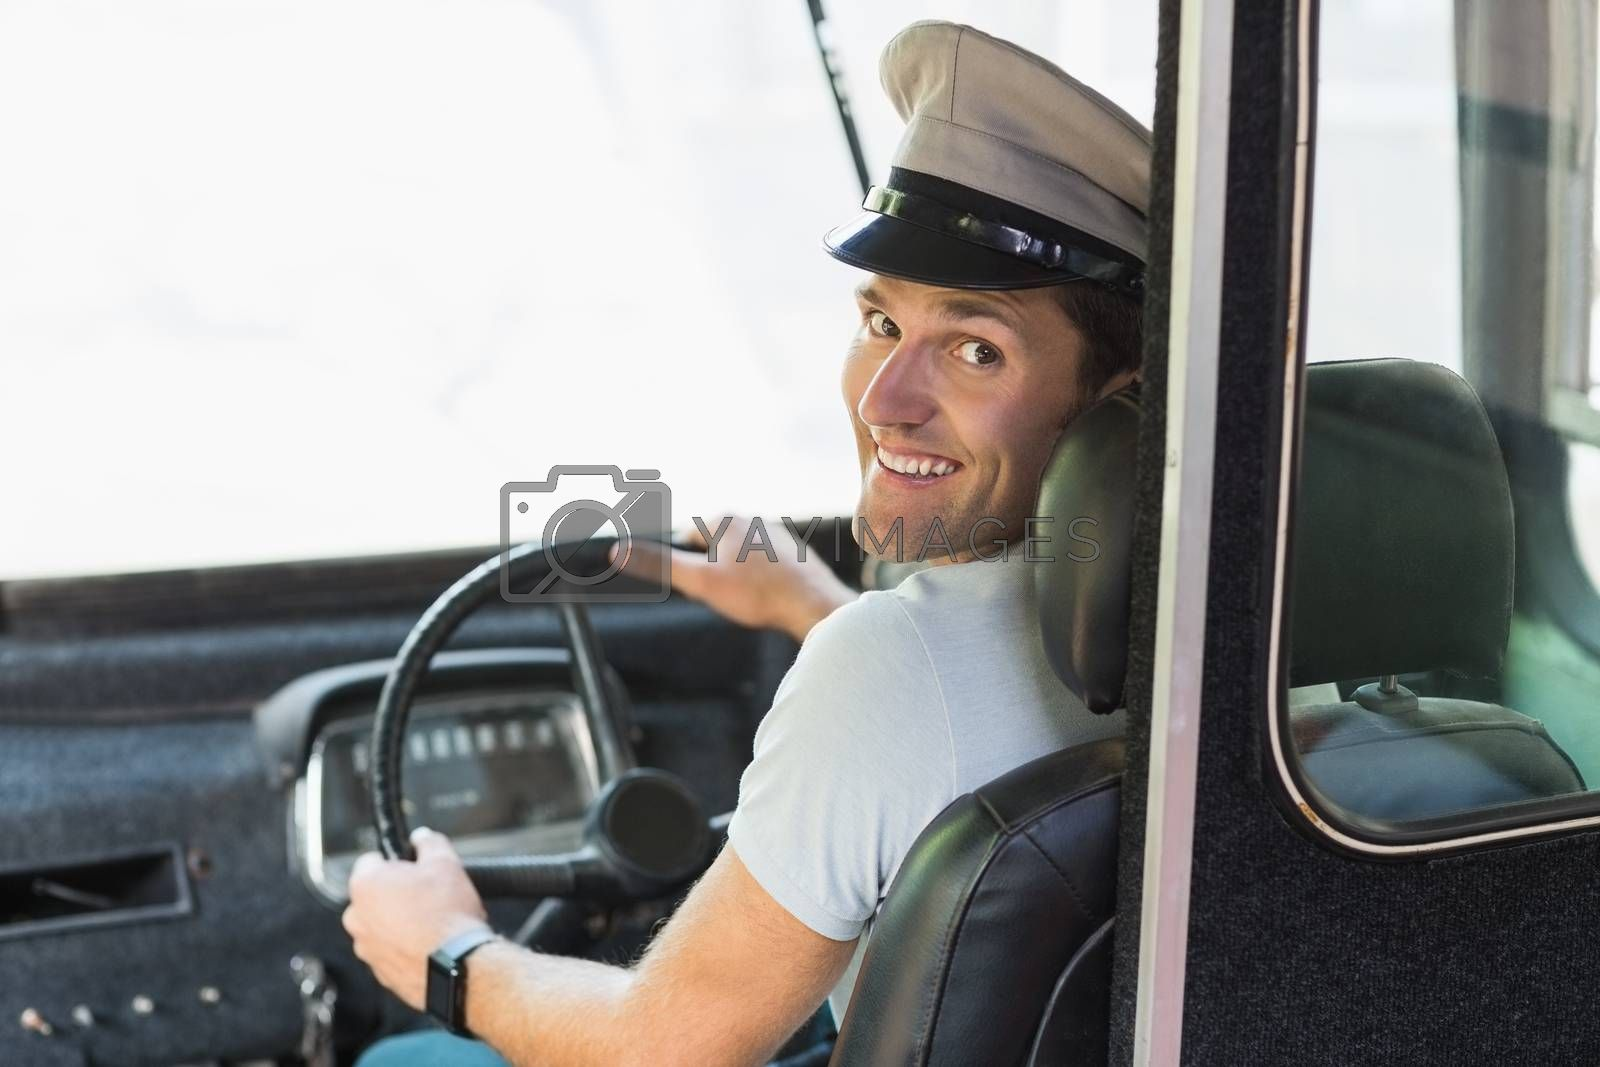 Smiling bus driver driving a bus by Wavebreakmedia